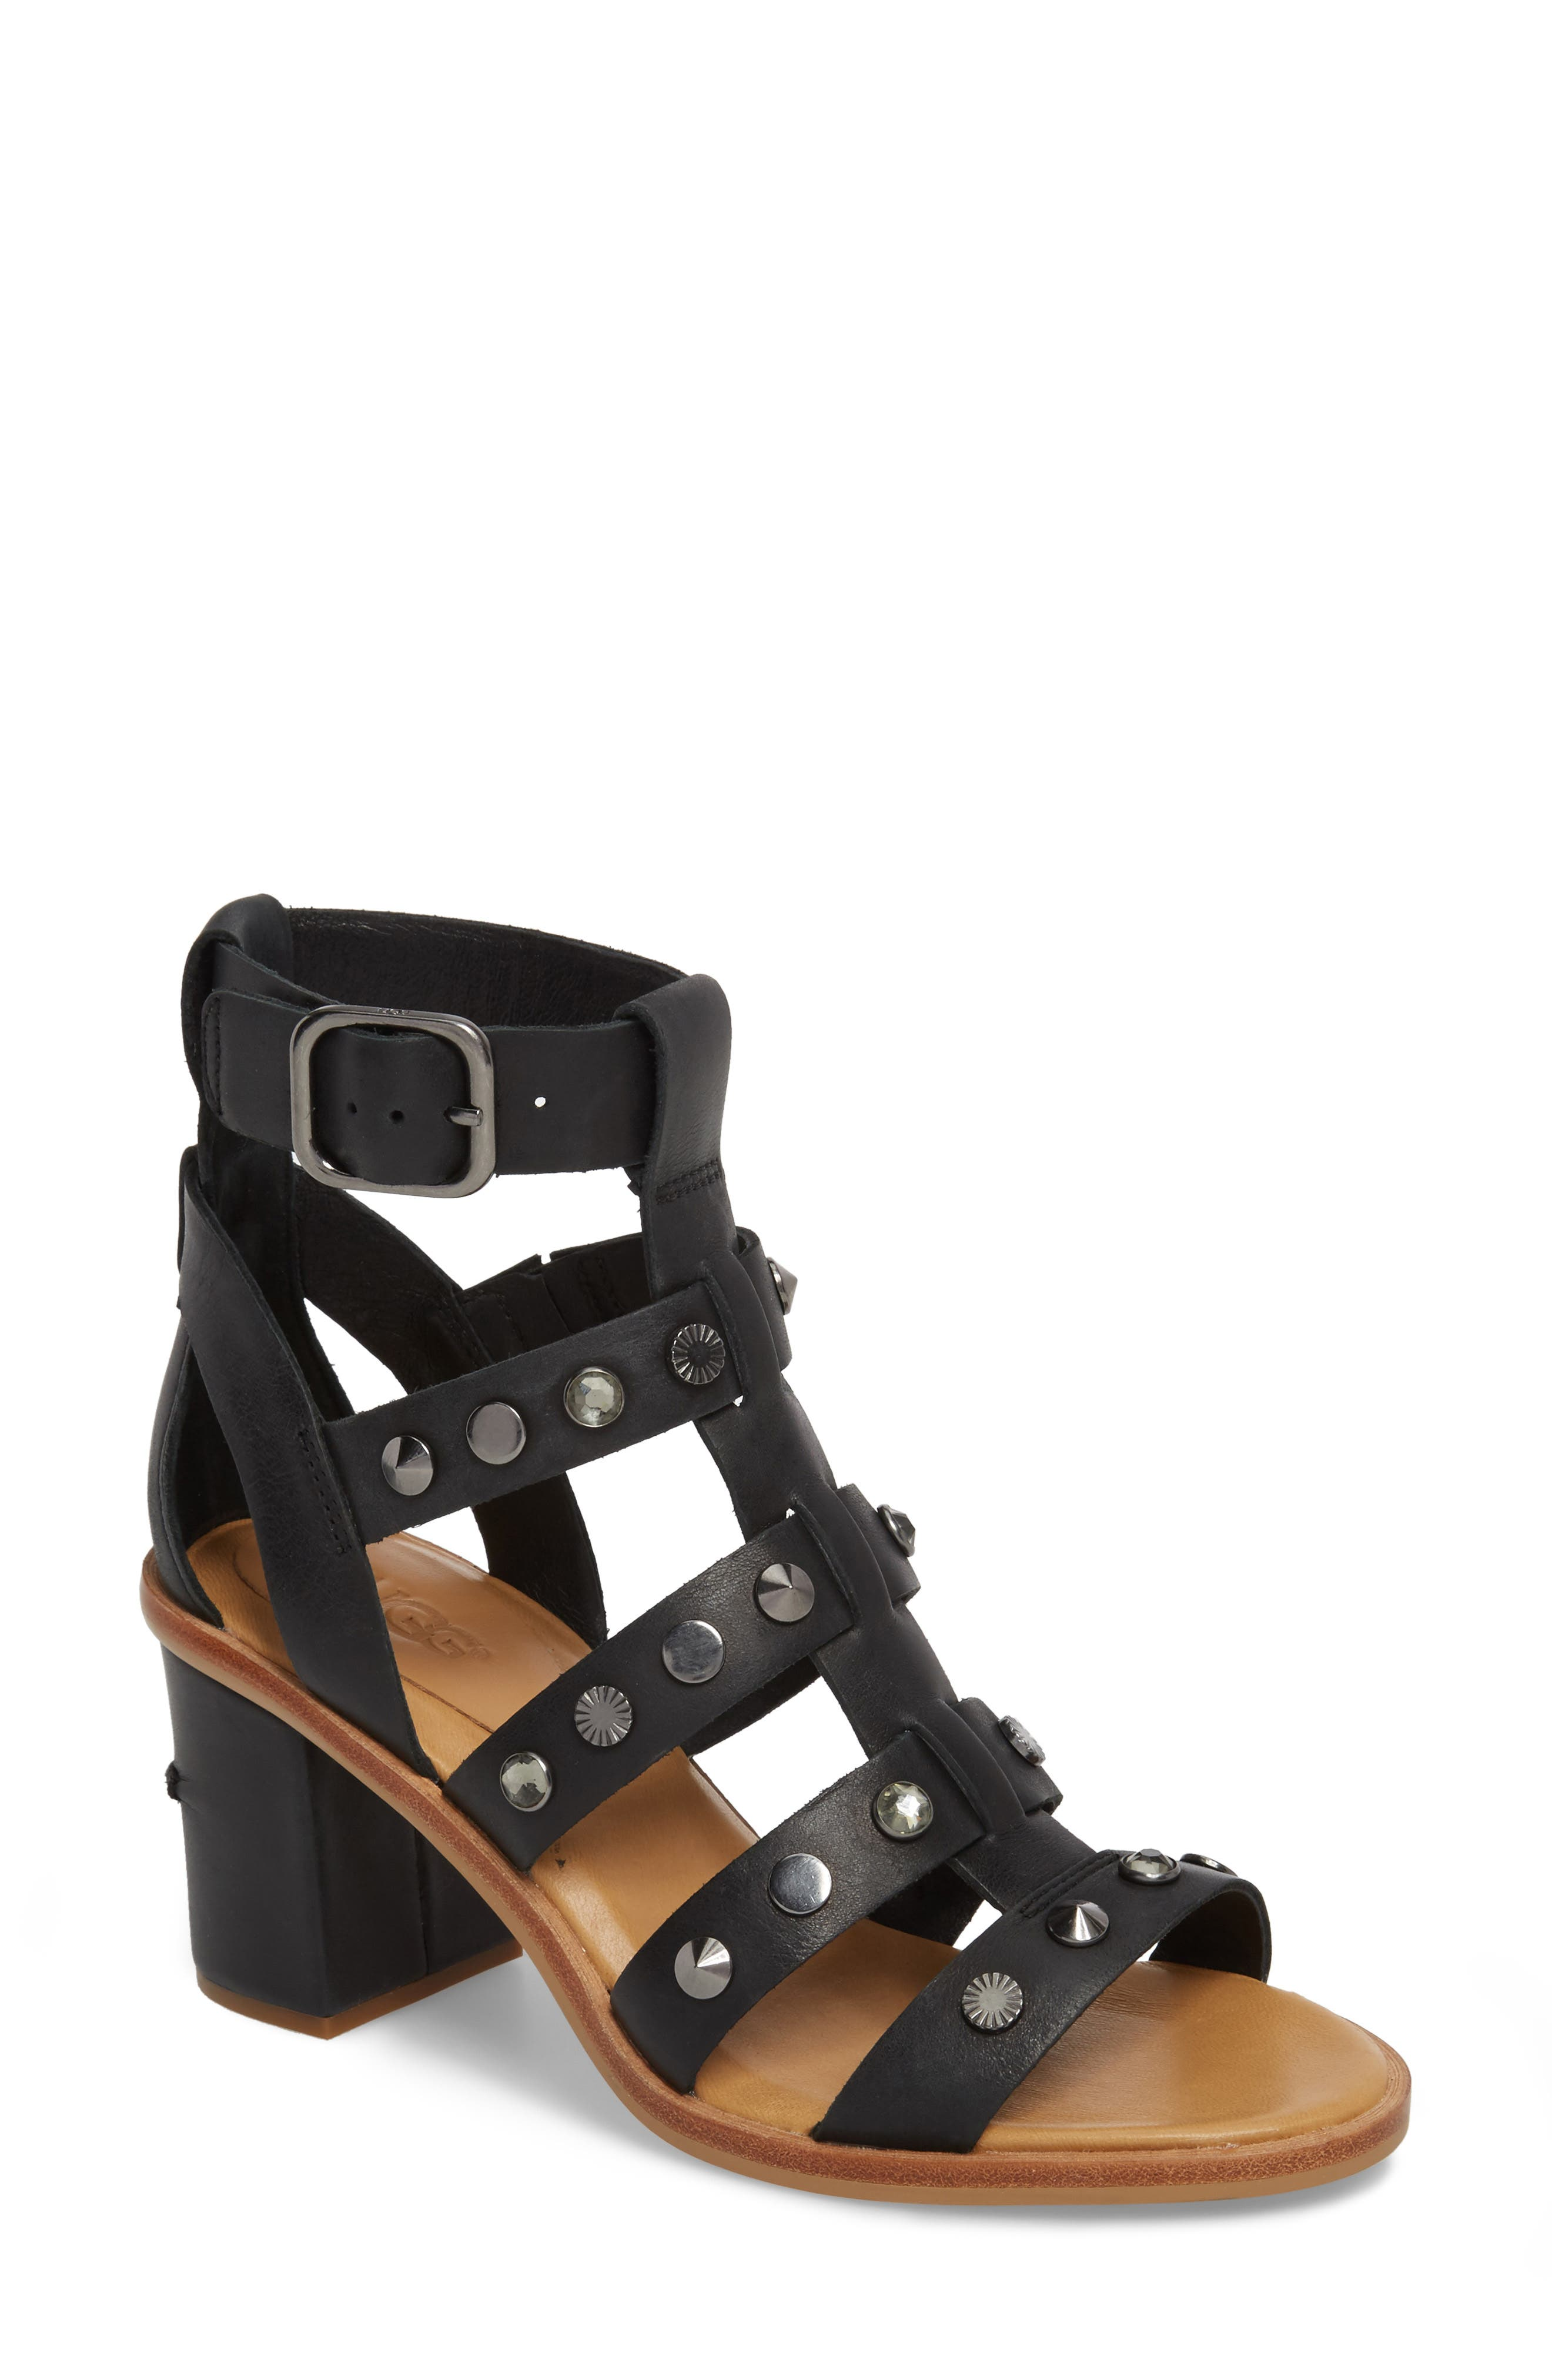 Macayla Studded Sandal,                             Main thumbnail 1, color,                             BLACK LEATHER